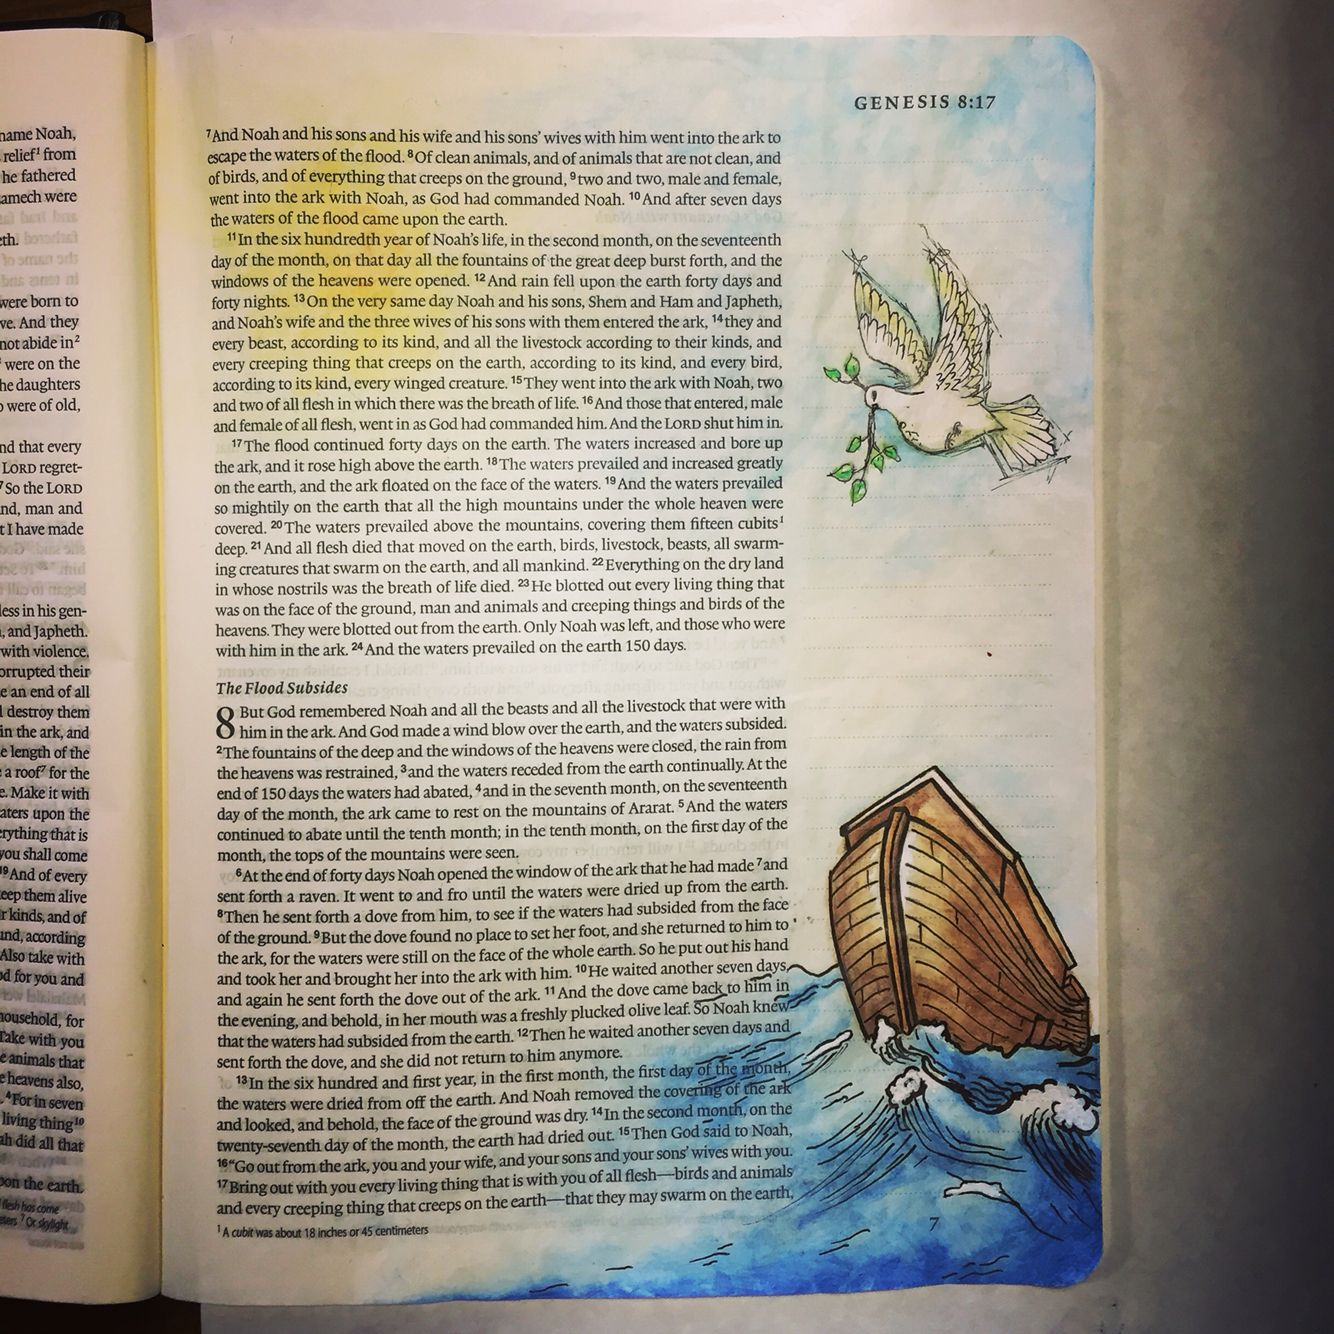 Relief Journal Of Art And Faith